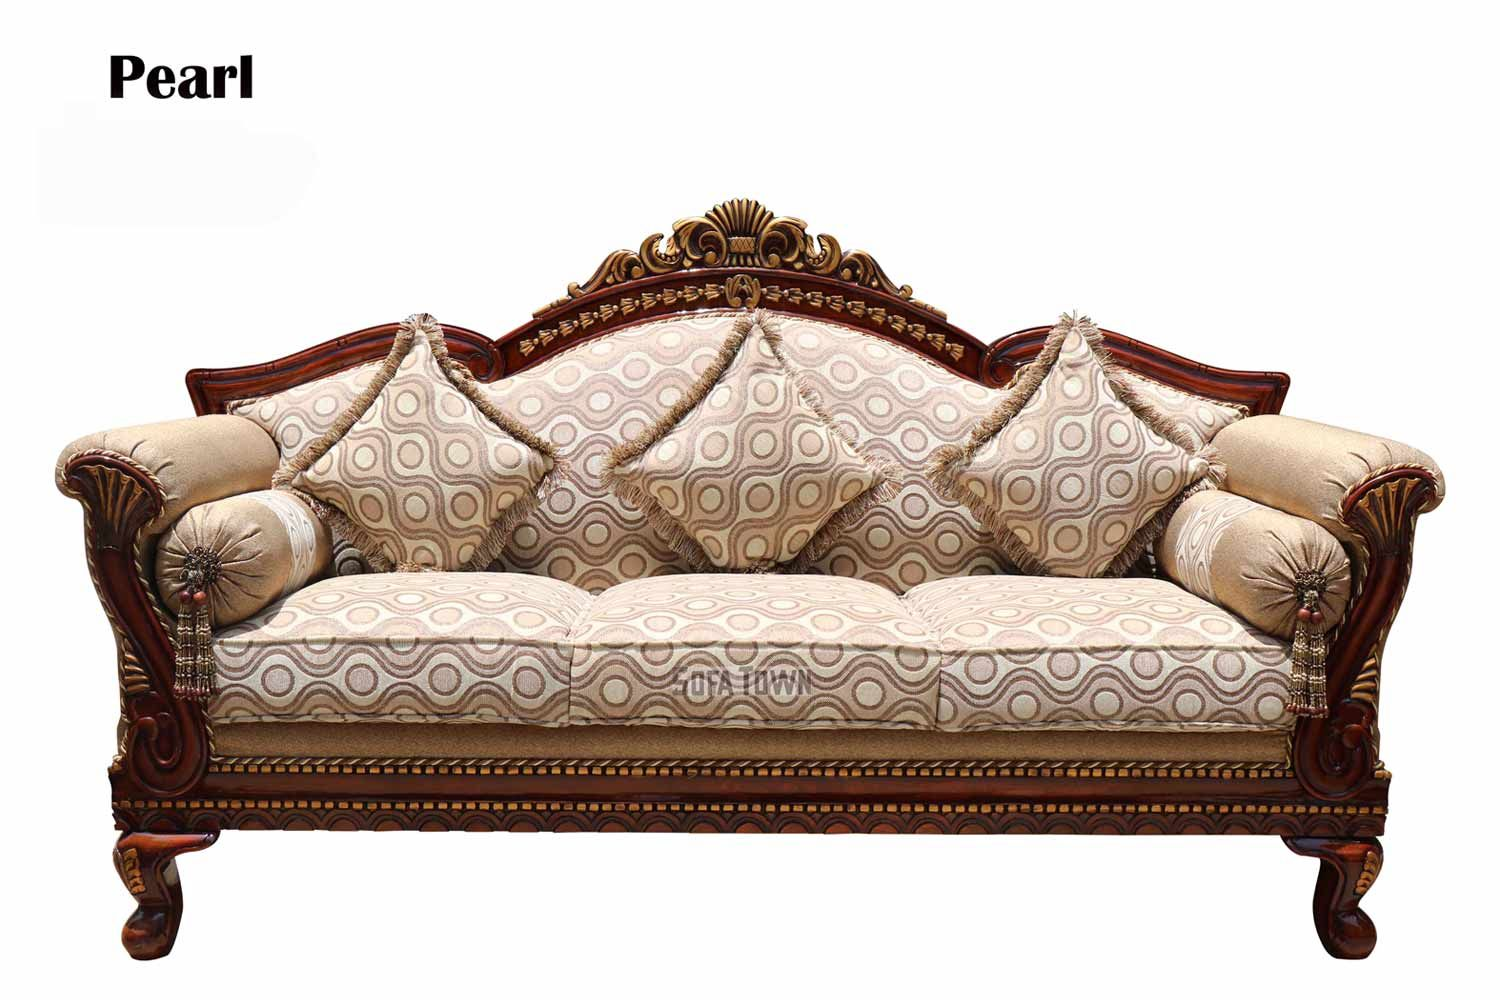 Buy Pearl Sofa Online Store Kirti Nagar Pearl Suppliers Delhi Mumbai Chennai Bangalore Pune Carved Sofa Wooden Sofa Set Designs Sofa Design Wood